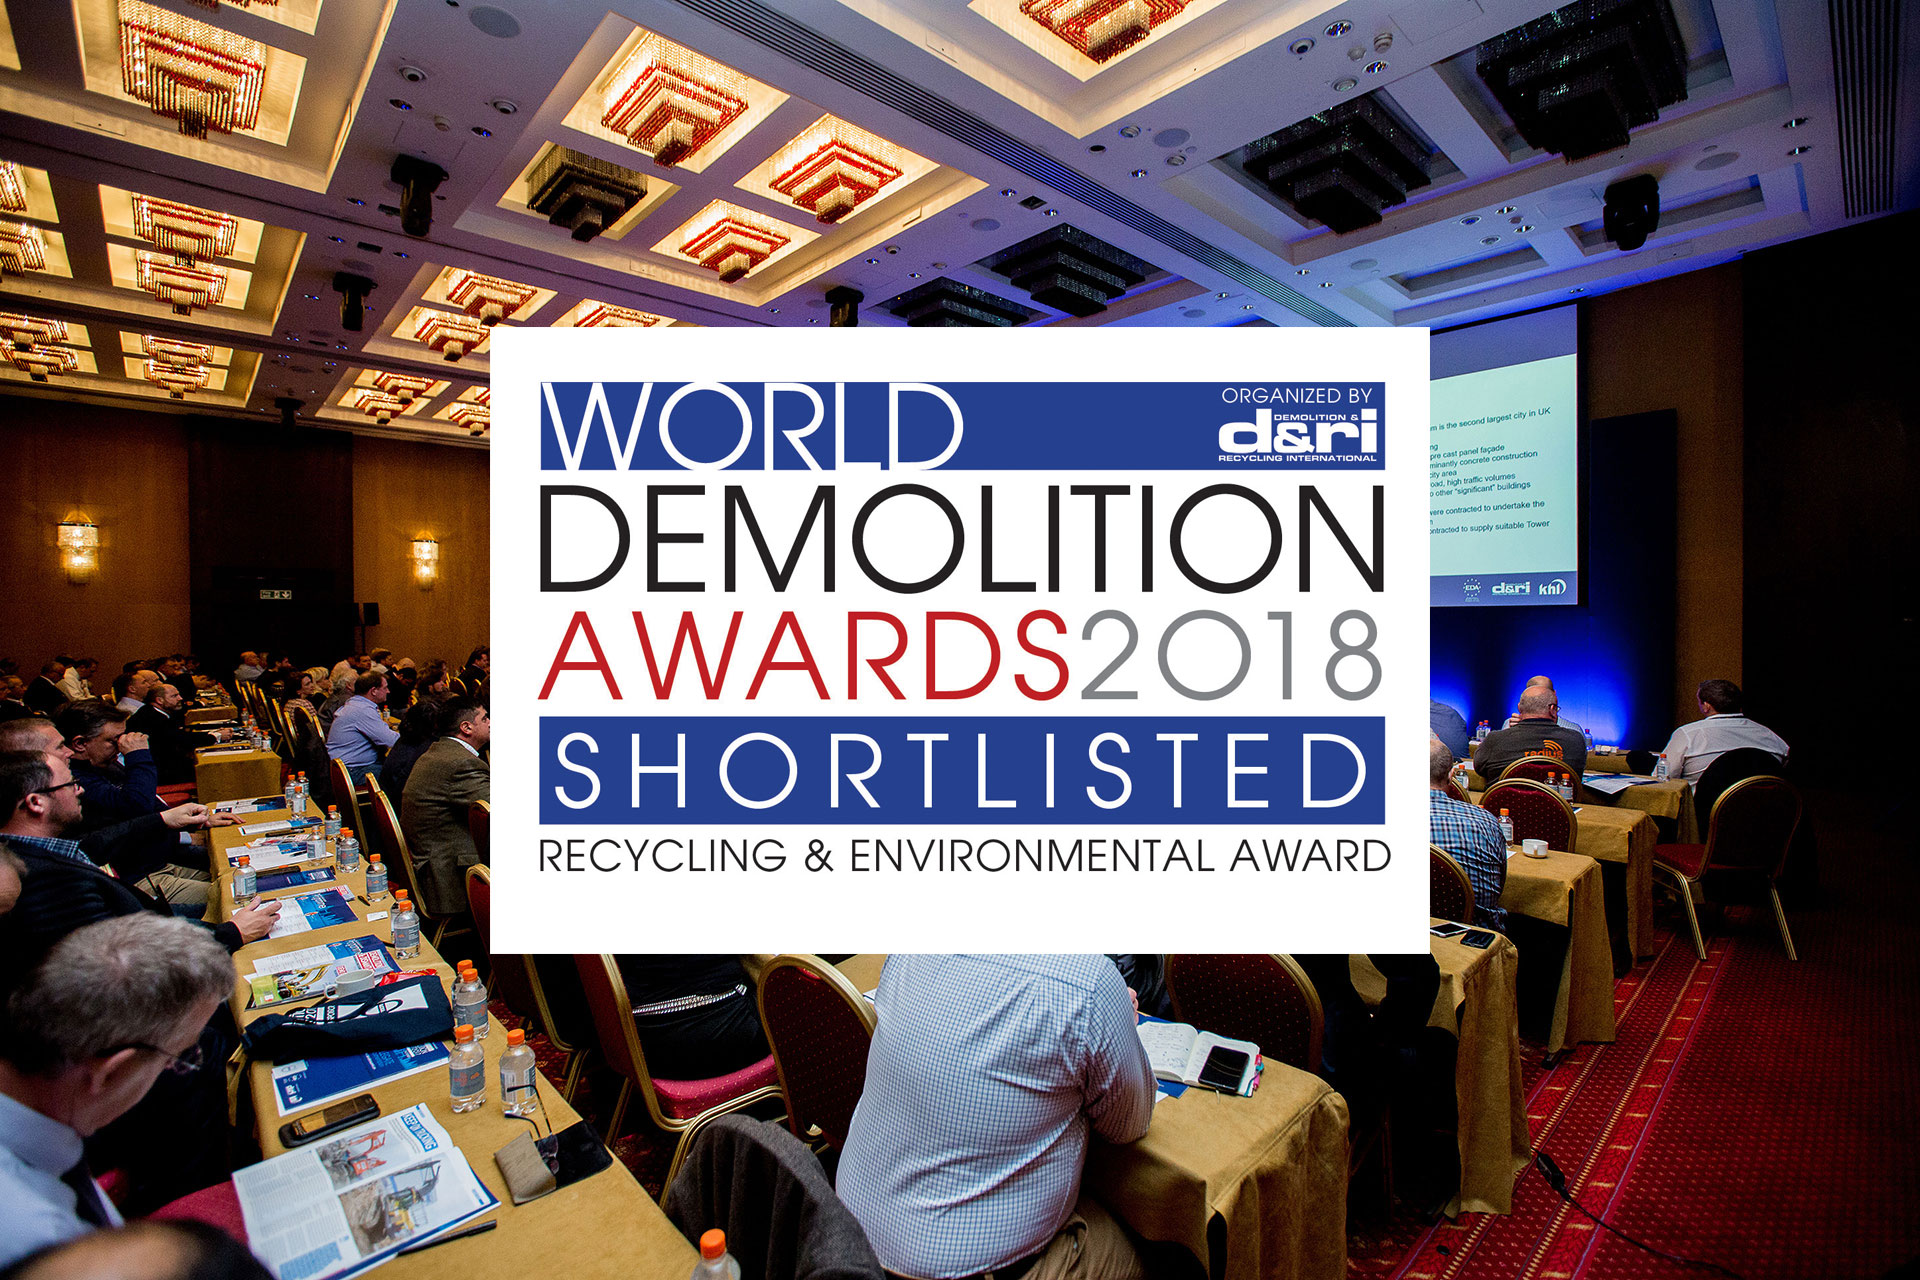 2018 World Demolition Awards